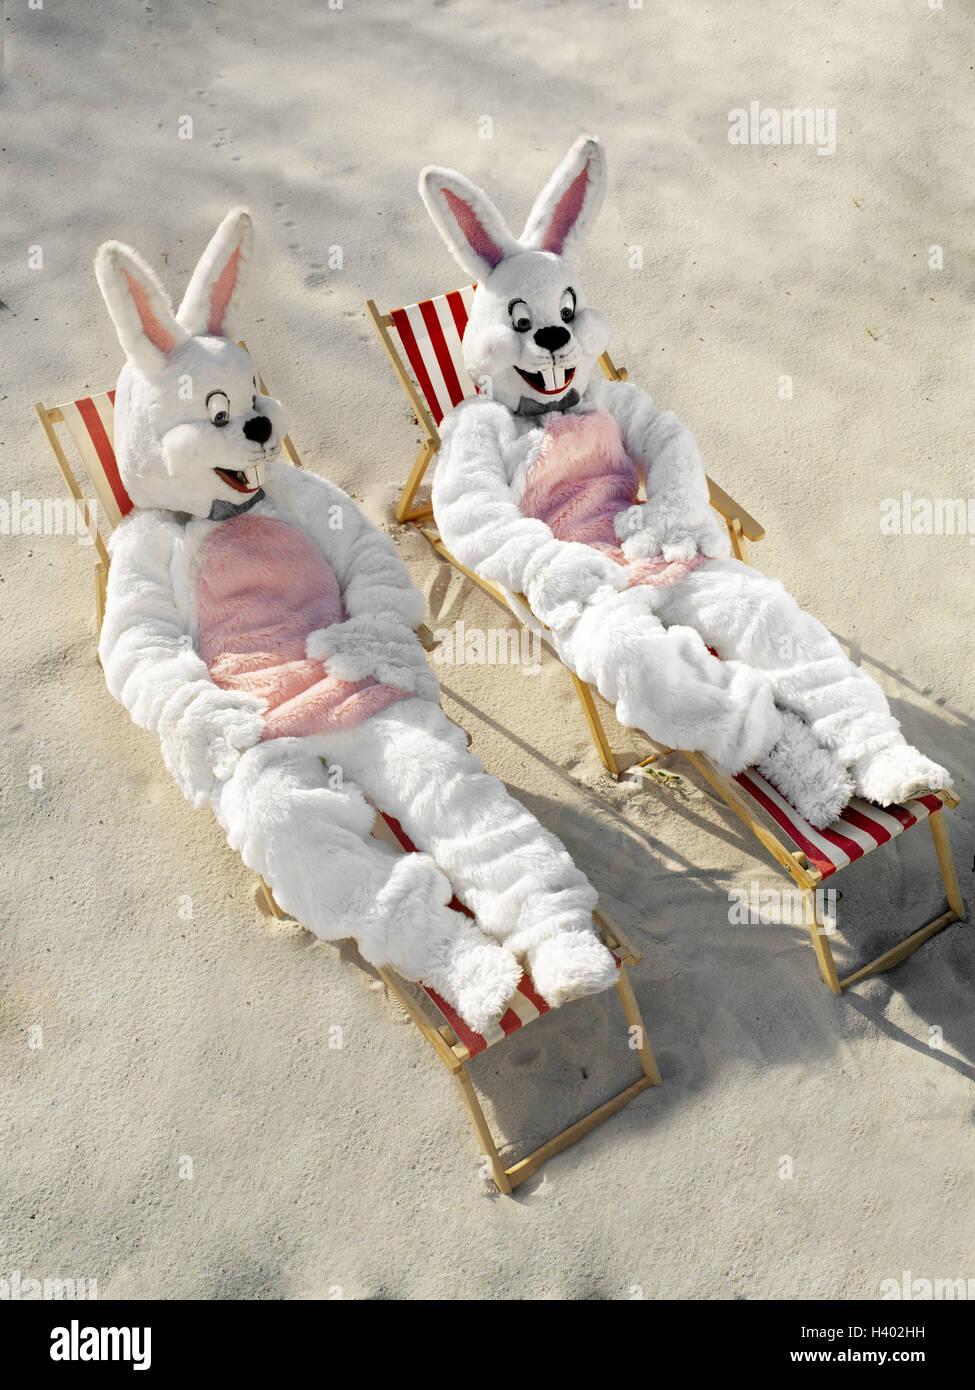 Sandy beach deck chairs Easter bunnies rest lining